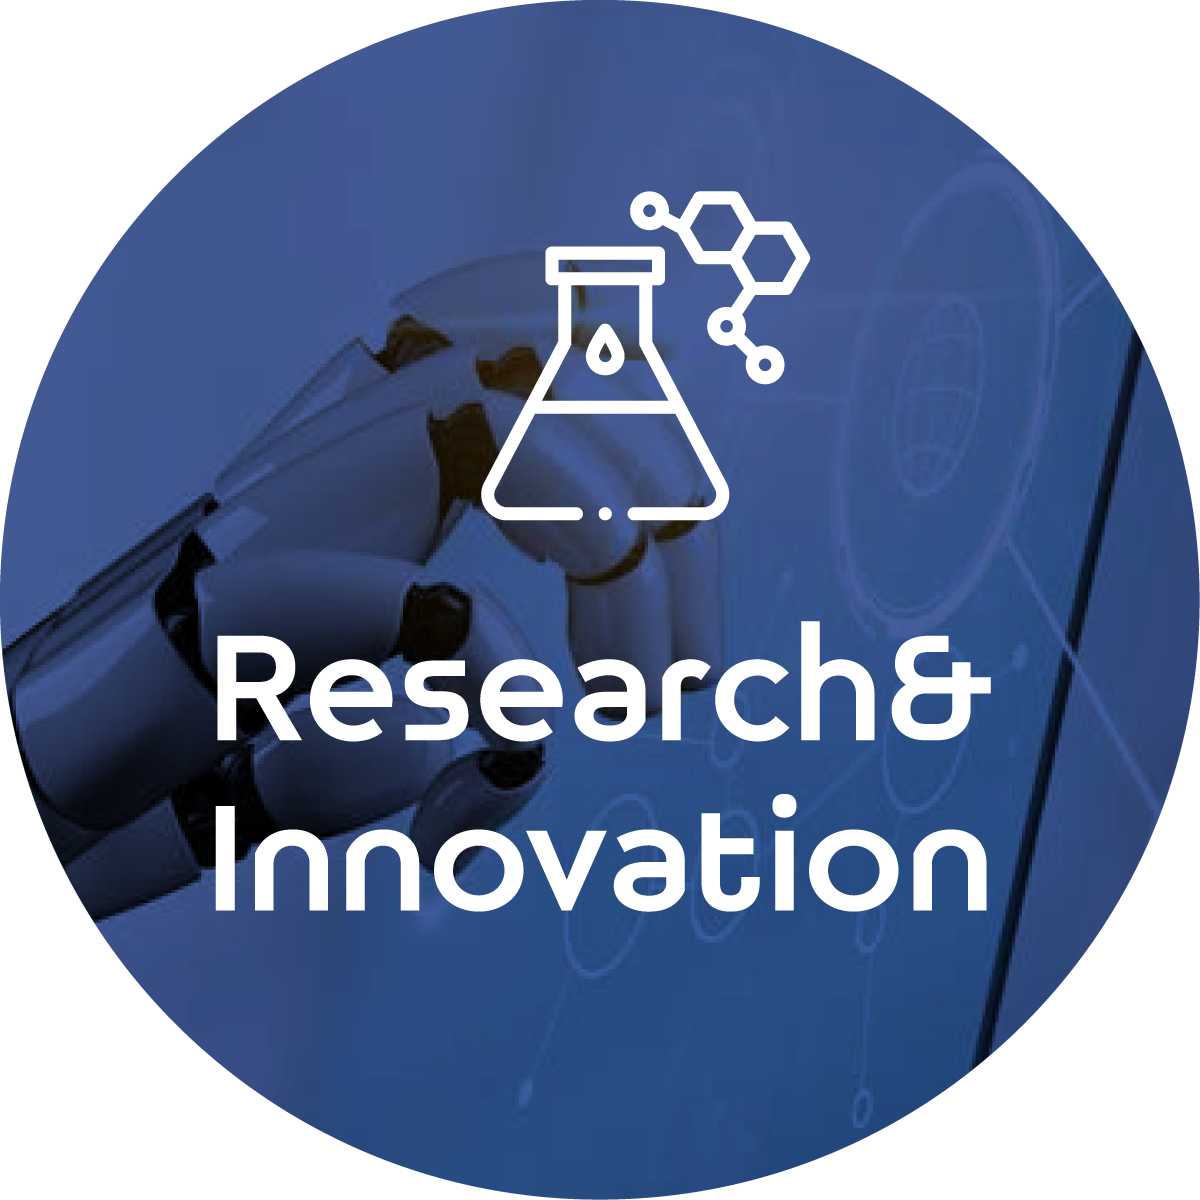 Research&Innovation